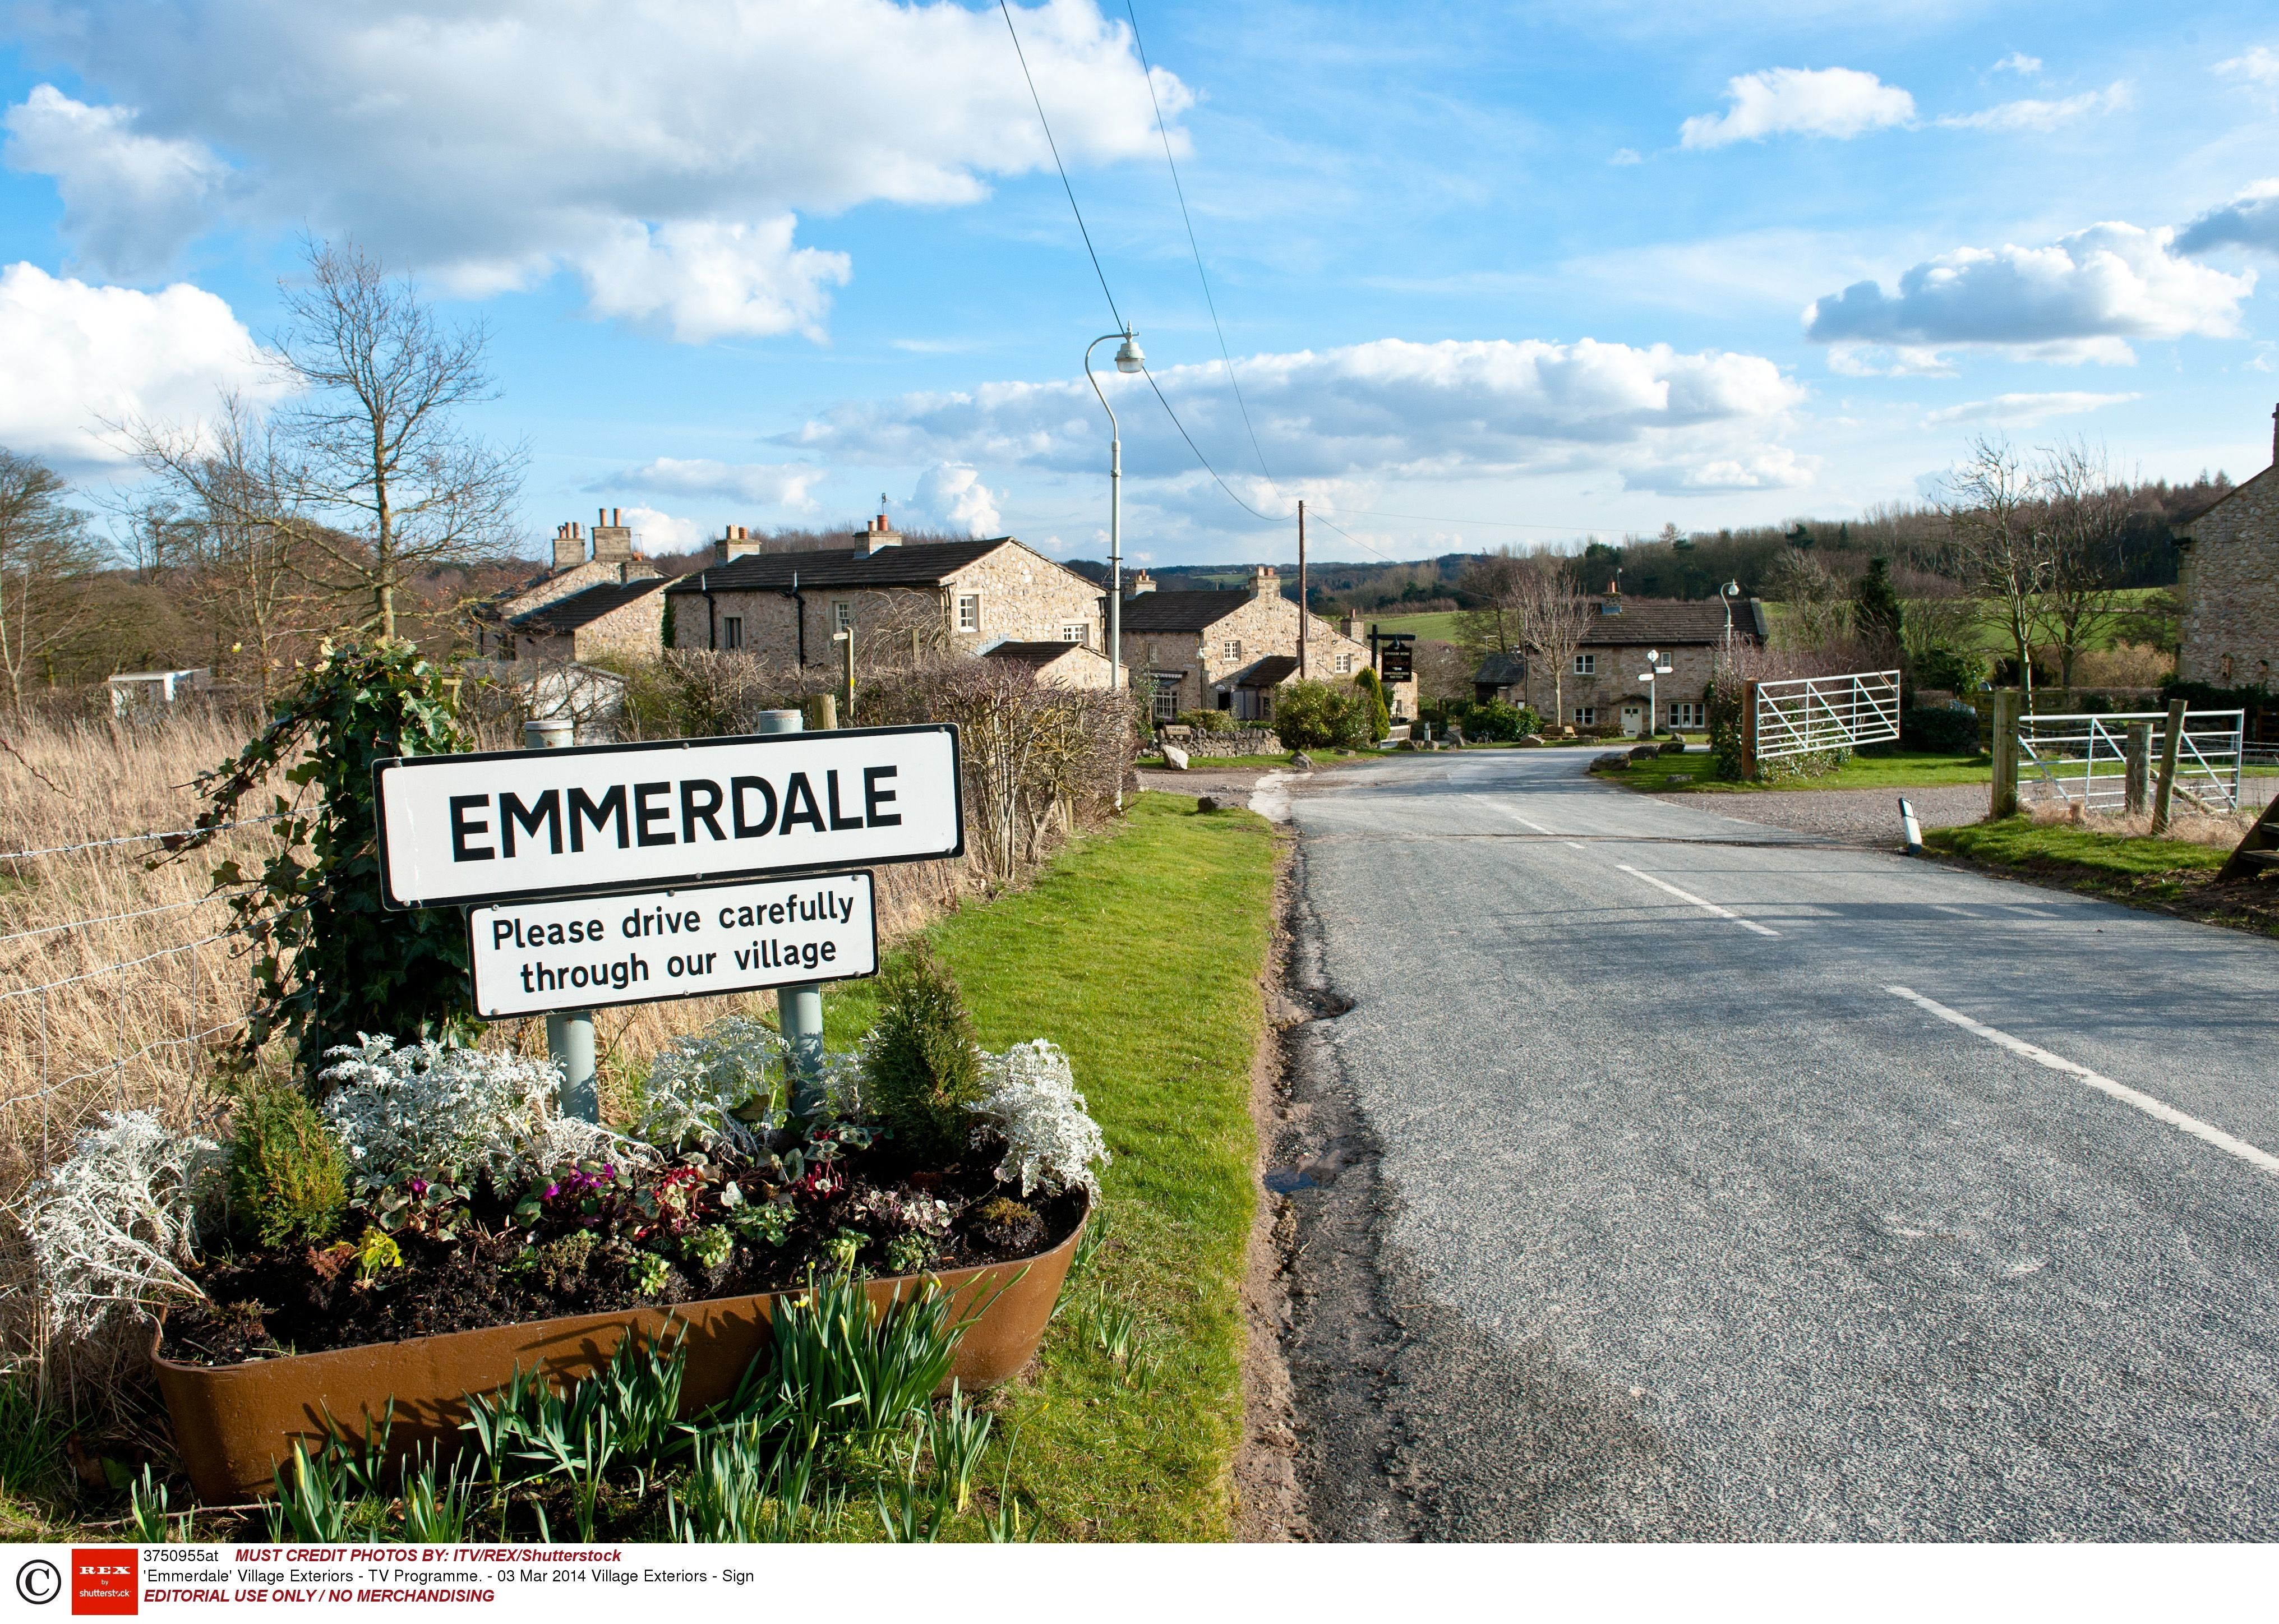 Spoiler Alert! 'Emmerdale' Bosses Reveal Plans To Kill Off Female Character - But Who Will It